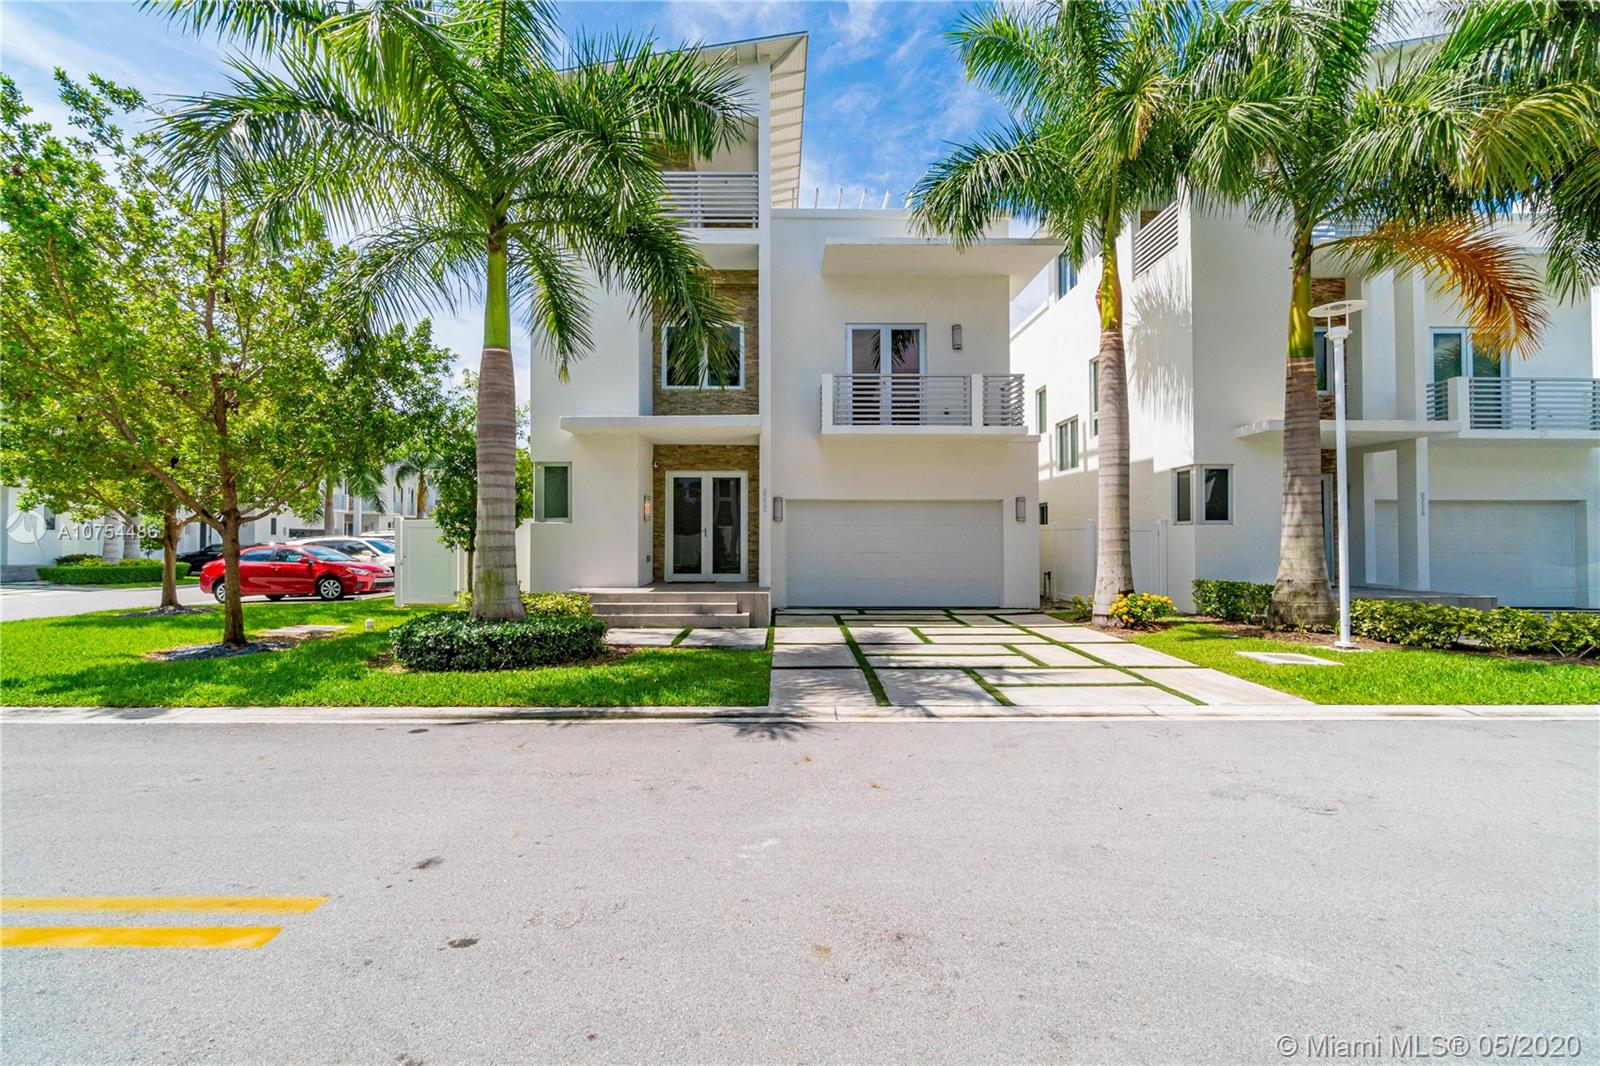 8220 NW 34th St, Doral, Florida